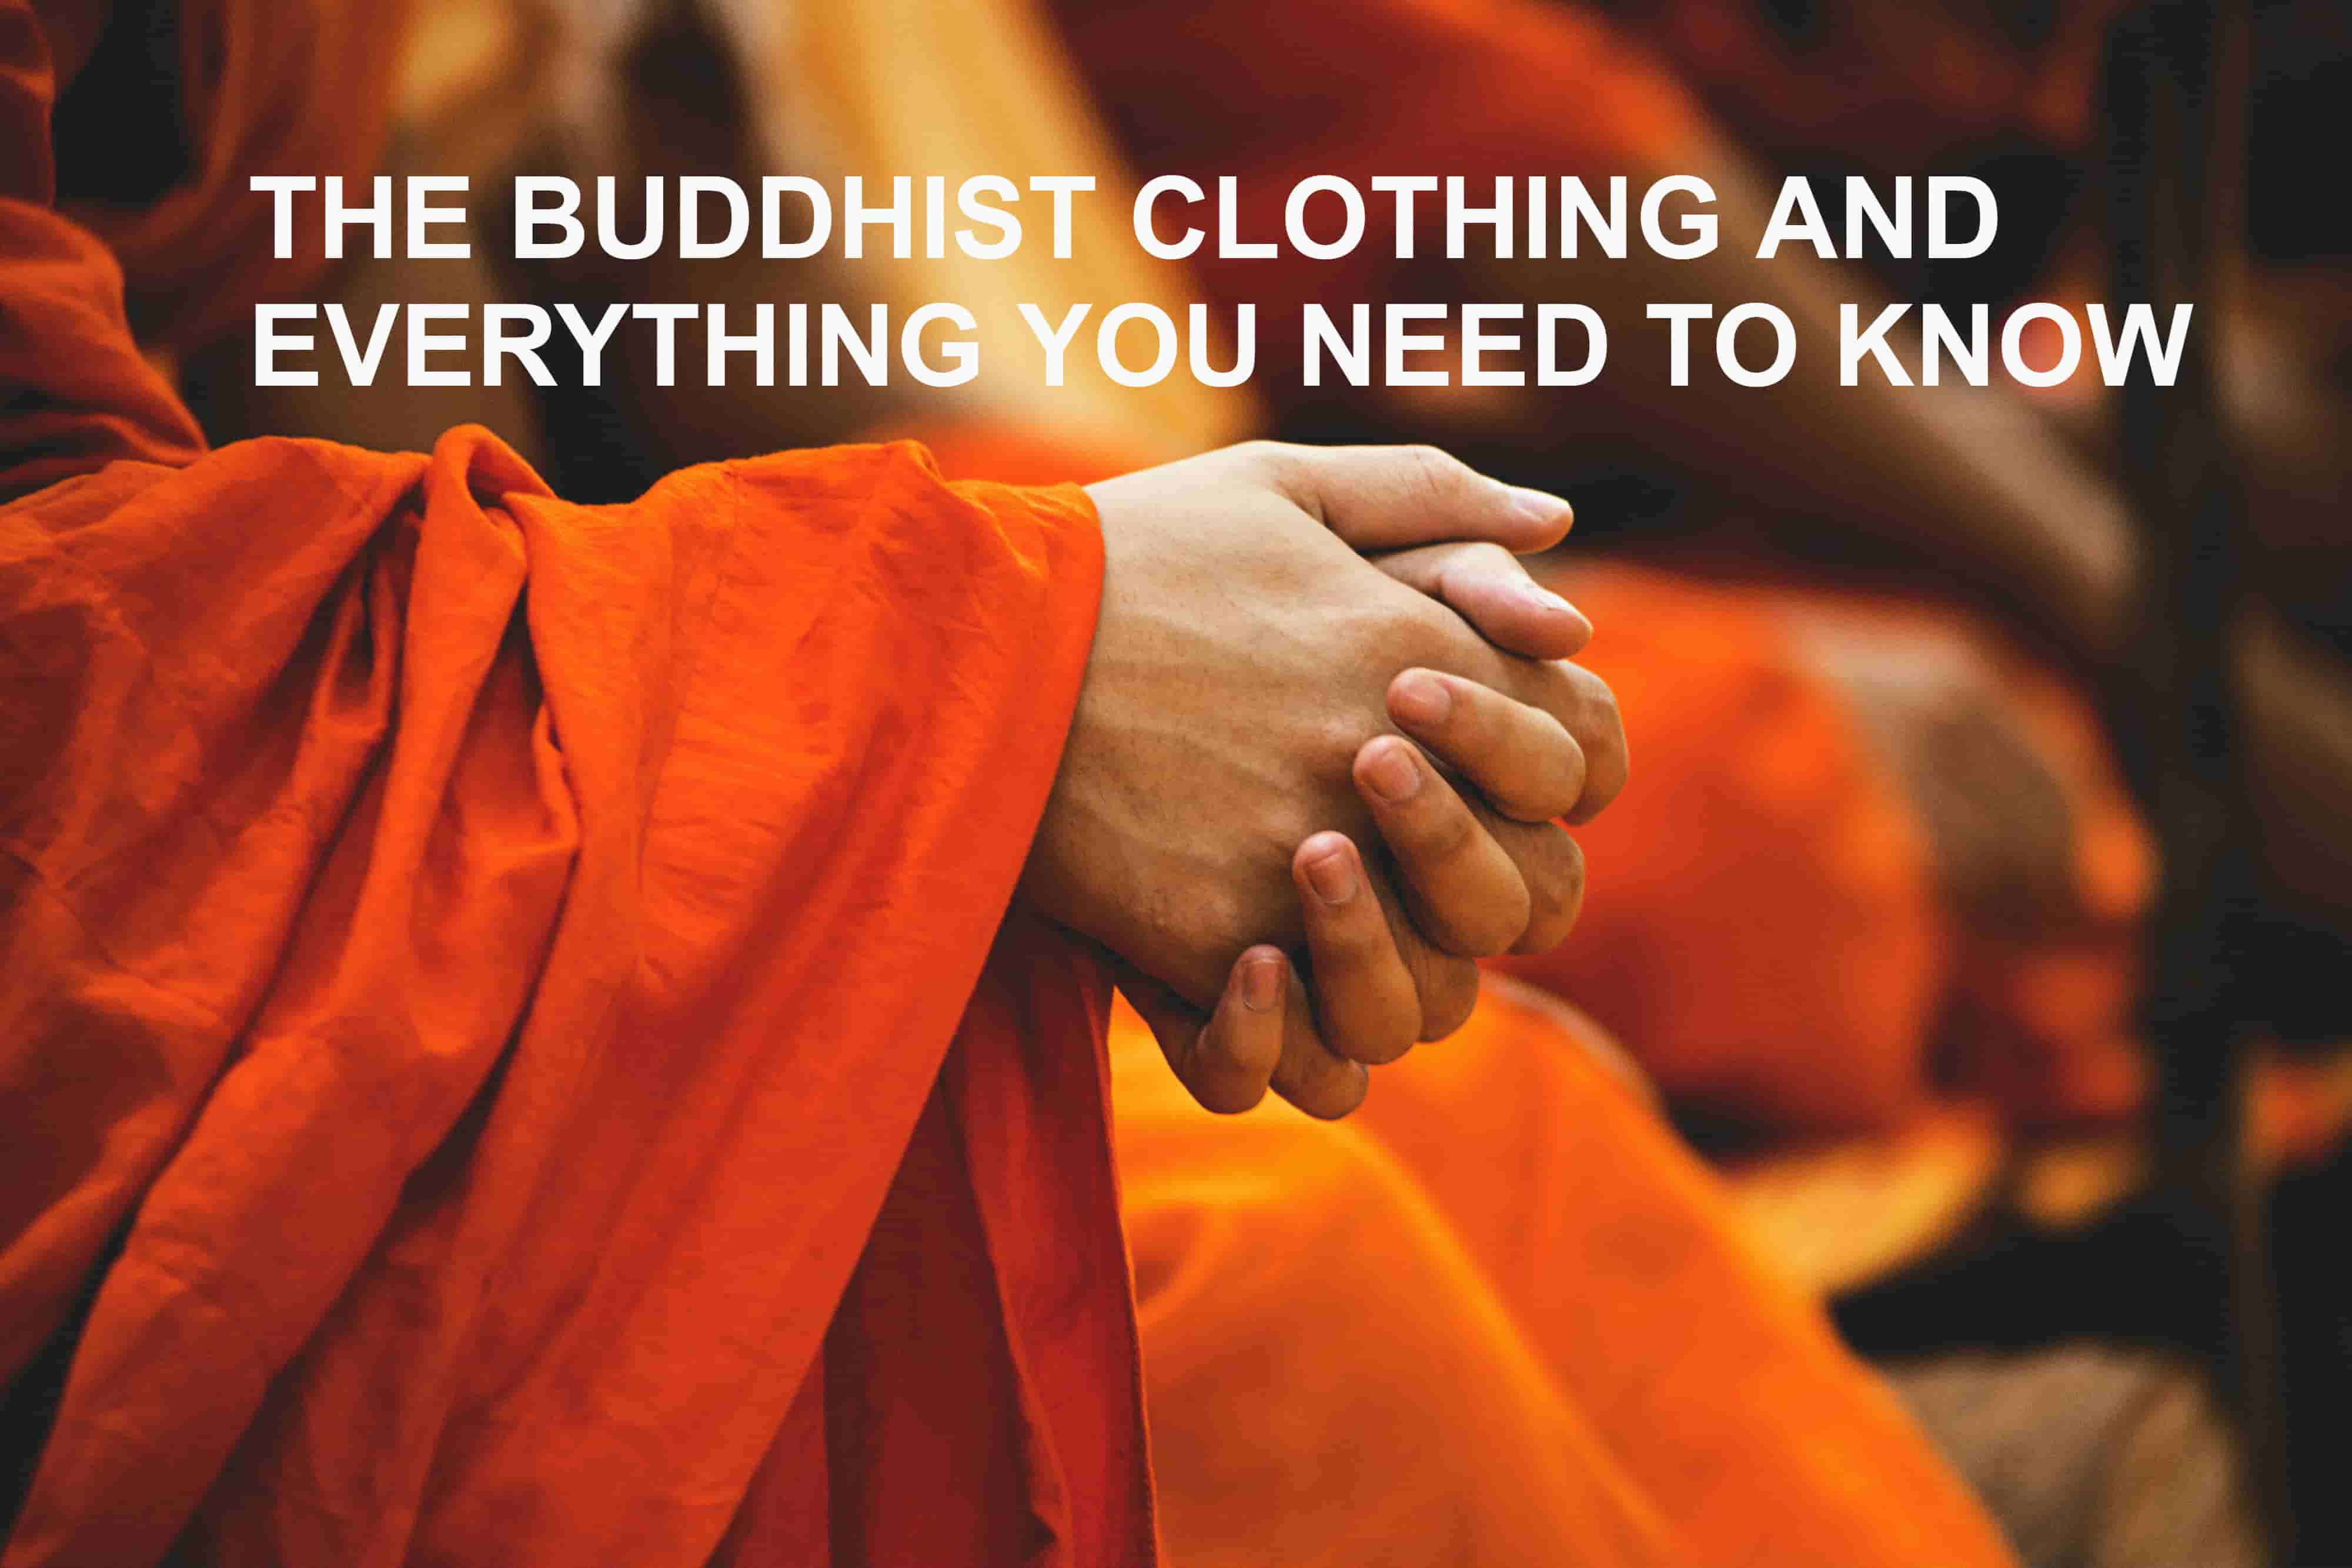 The Buddhist Clothing And Everything You Need To Know